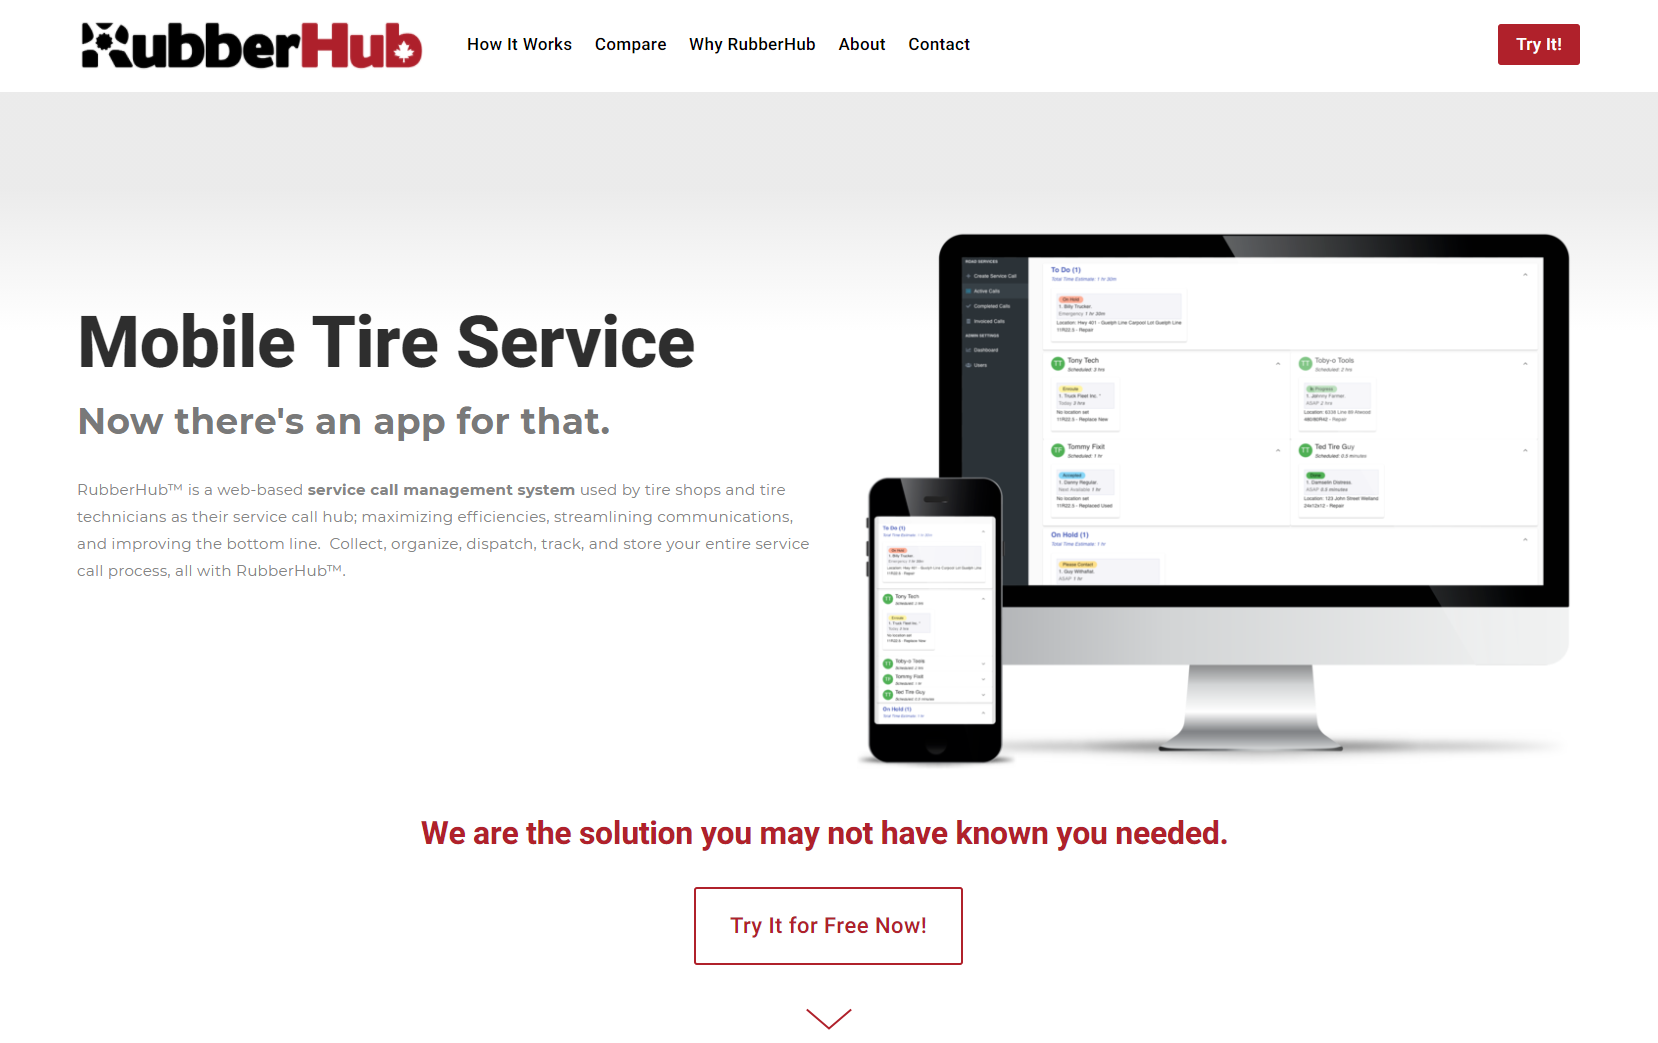 Using technology to create efficiencies in mobile tyre service